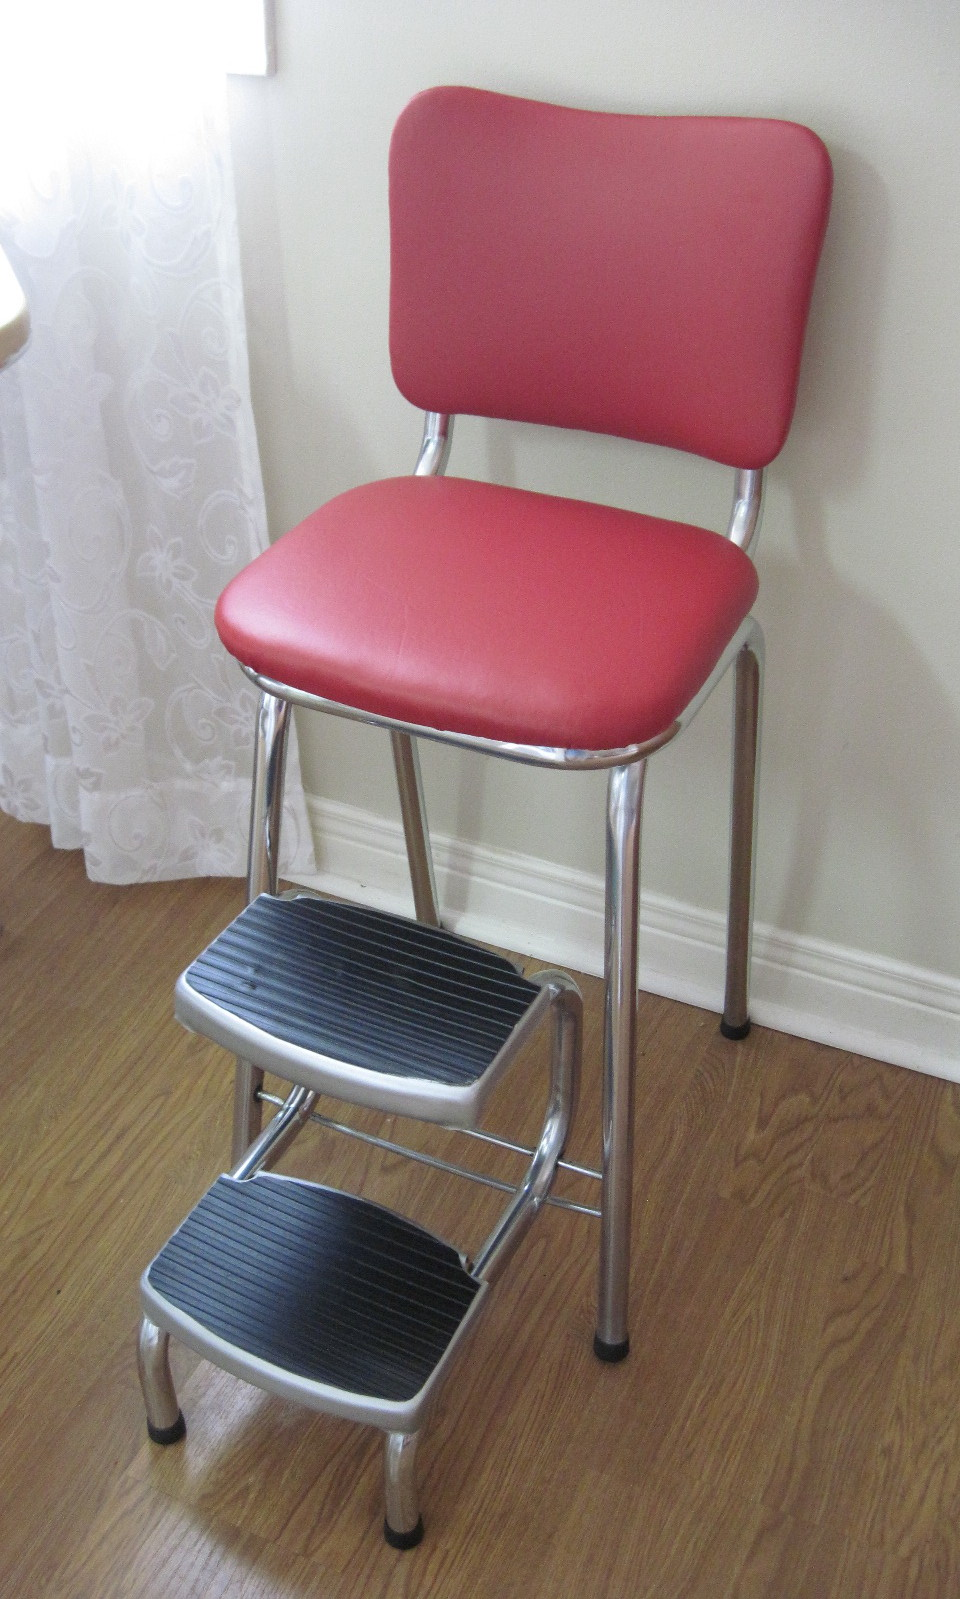 retro chair stool wheelchair for hire vintage red vinyl mid century chrome step fabfindsblog